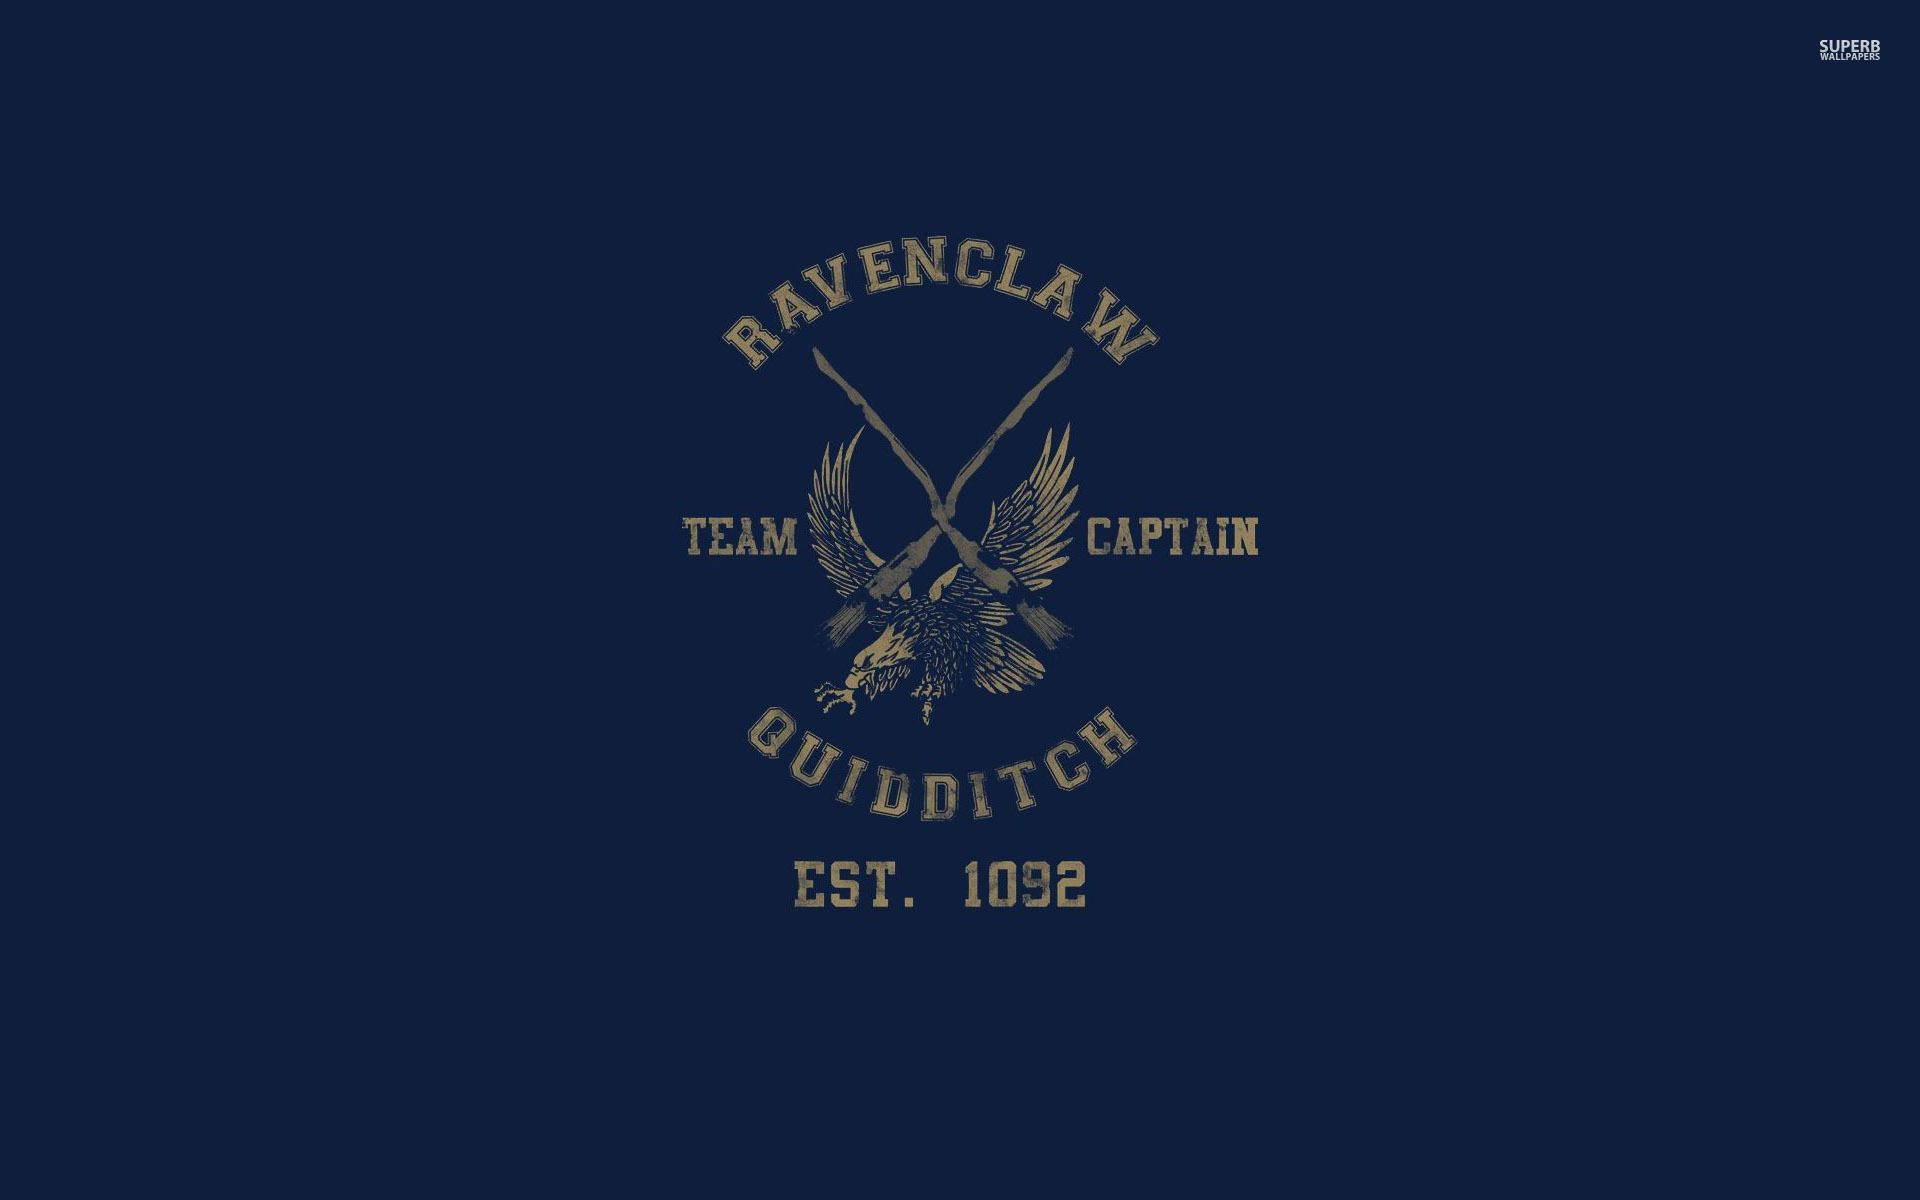 Ravenclaw Wallpapers Harry Potter Wallpaper Ravenclaw Ravenclaw Quidditch